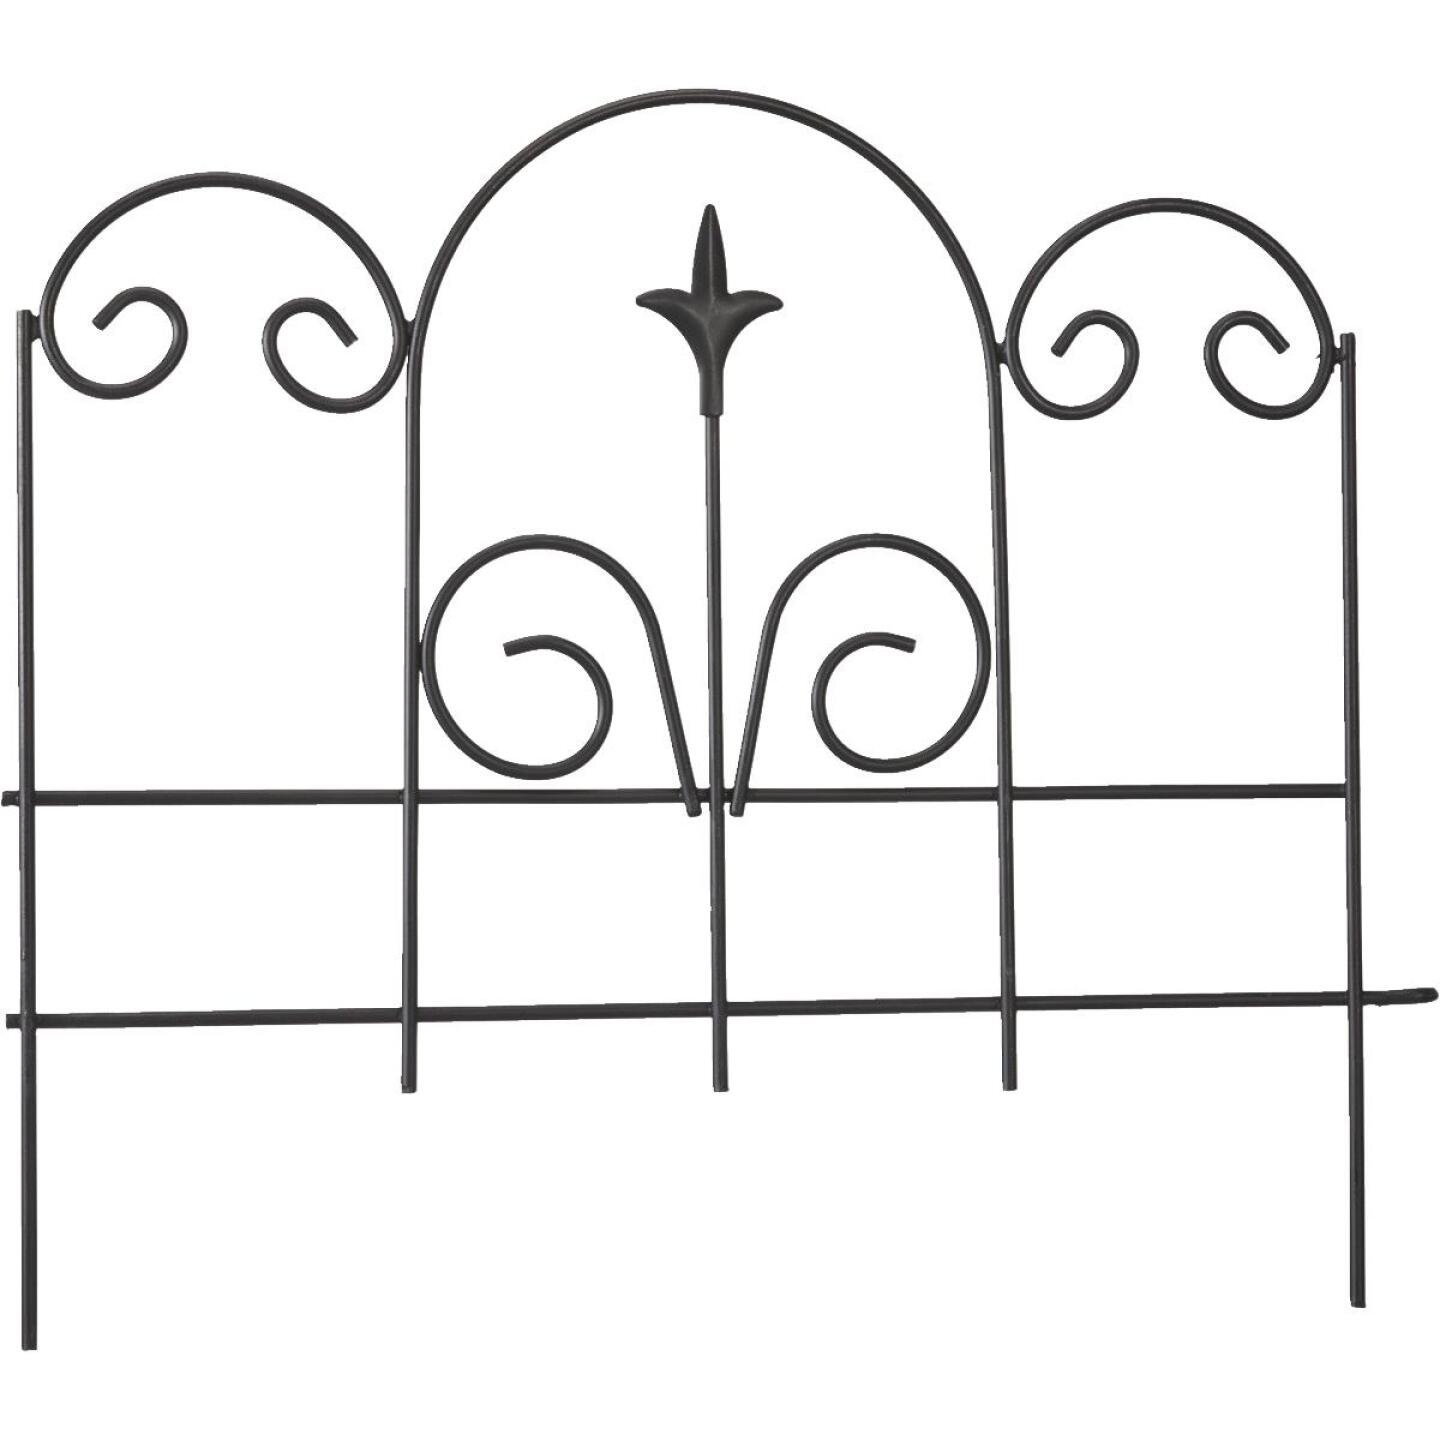 Panacea 16 In. H x 18 In. L Metal Decorative Border Fence Image 1